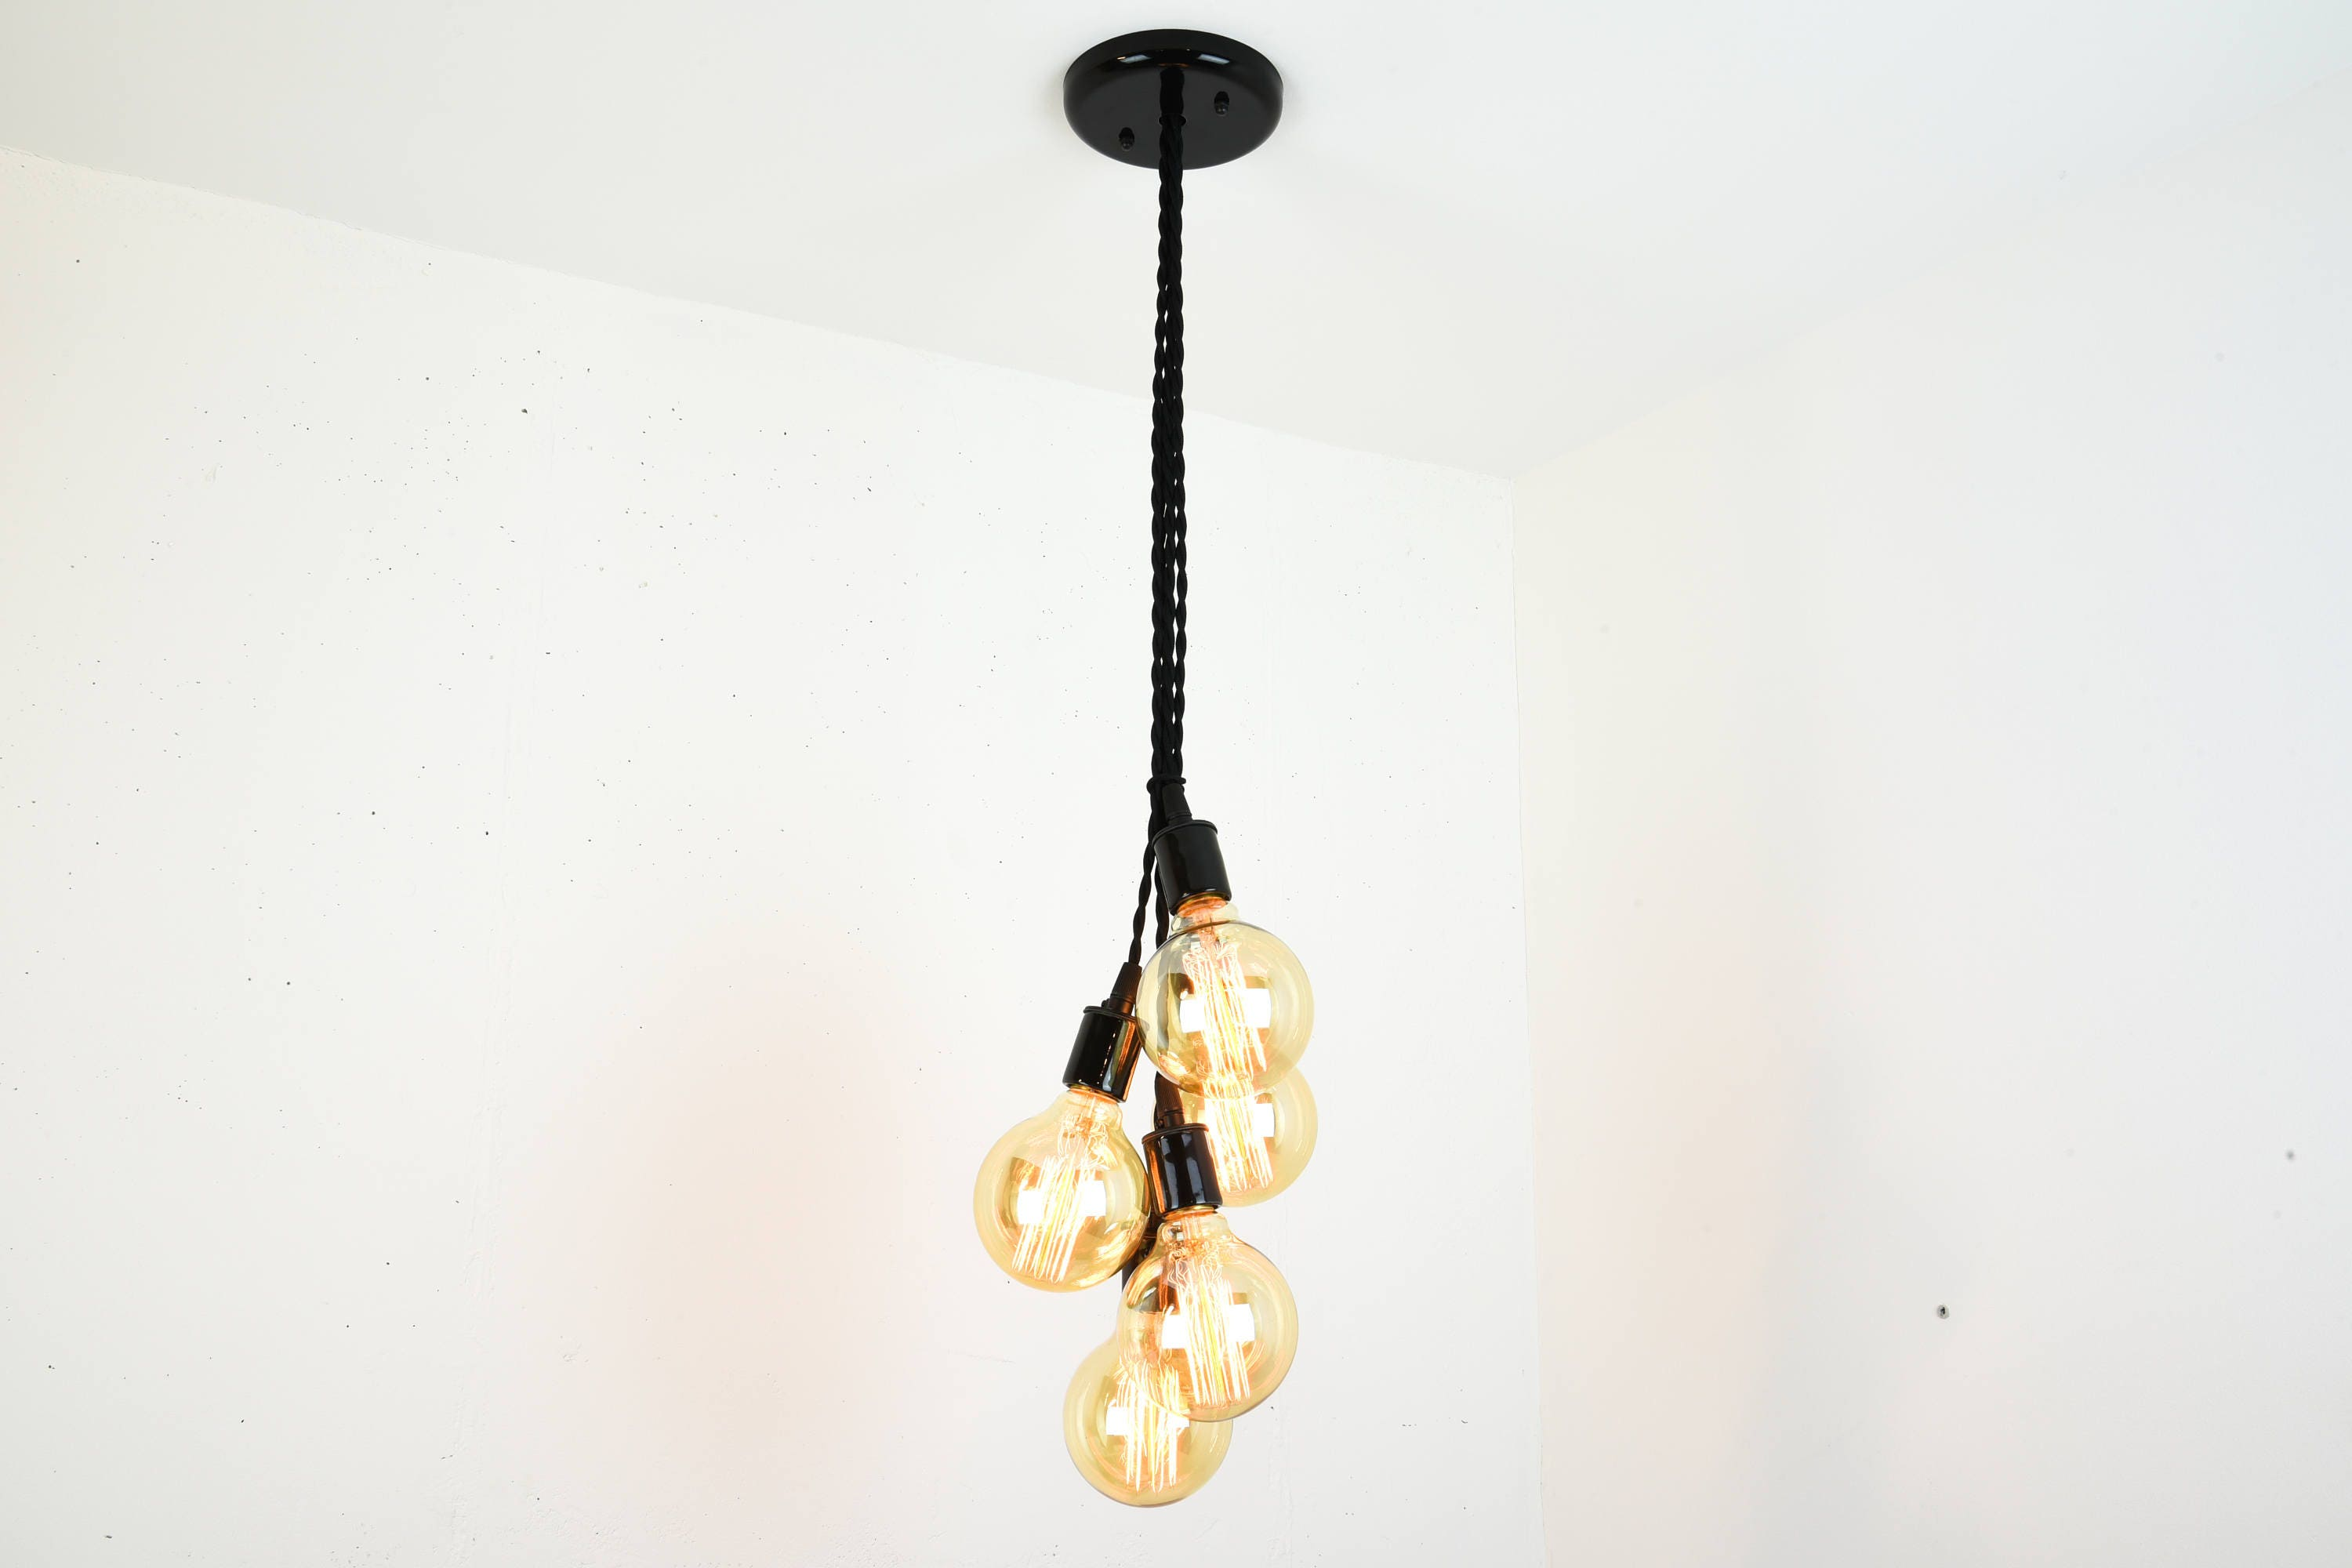 Multi Pendant Hanging Light Cluster Chandelier Exposed Bulb